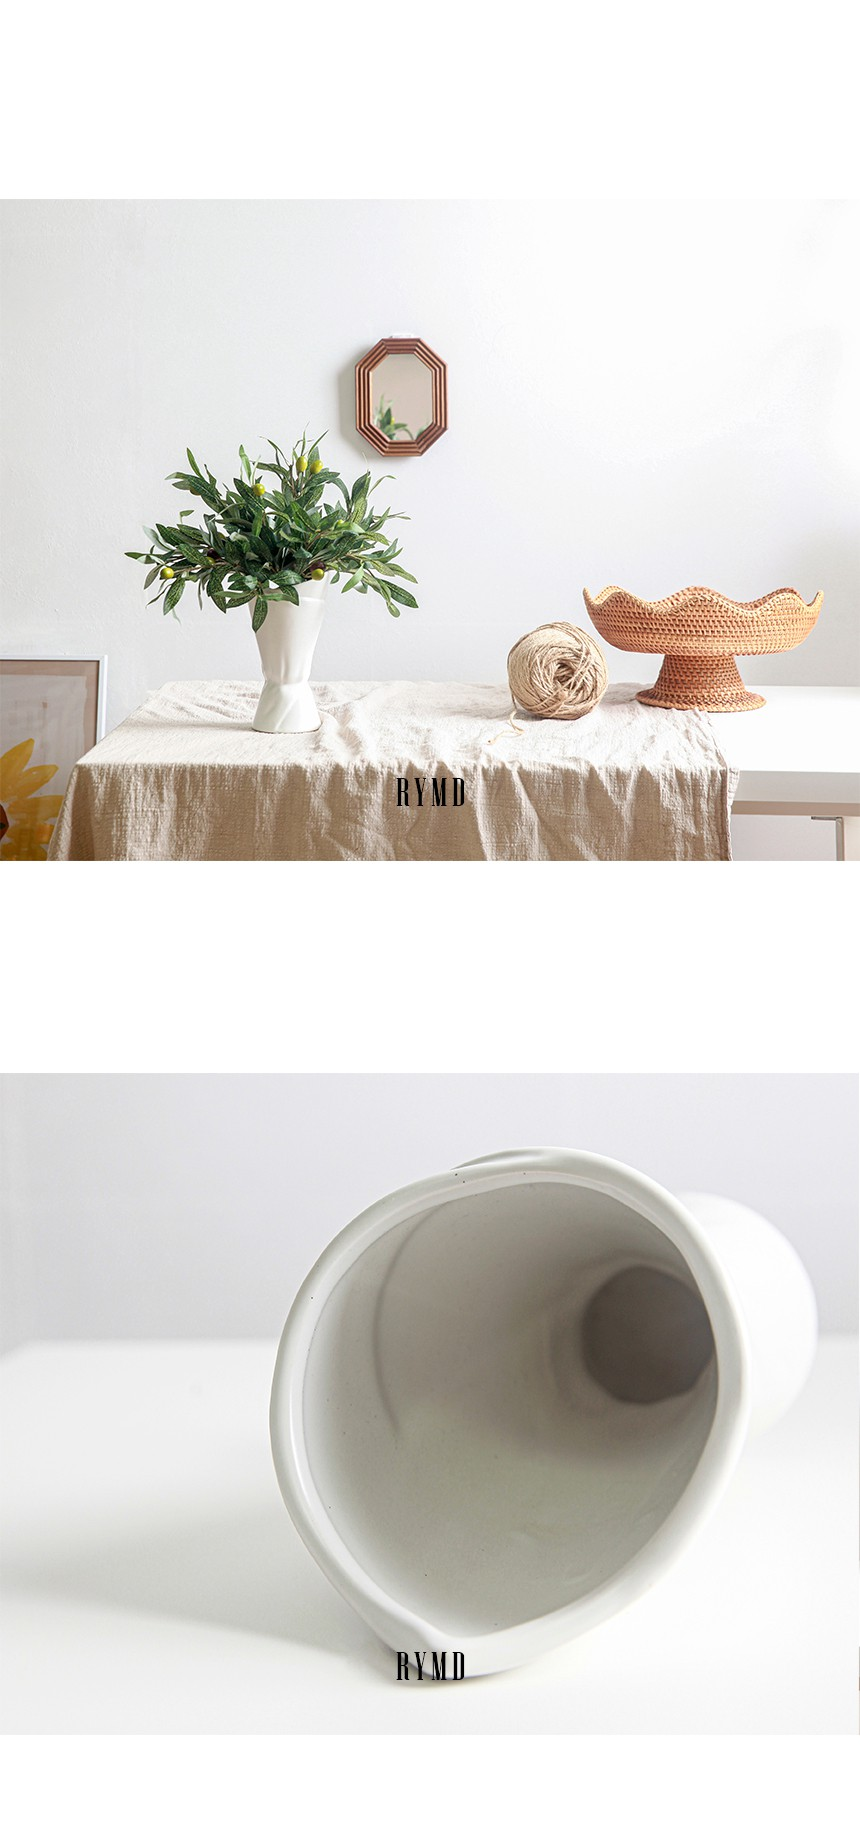 WHITE_SIMPLEELLIPSE_CERAMIC_VASE_04.jpg